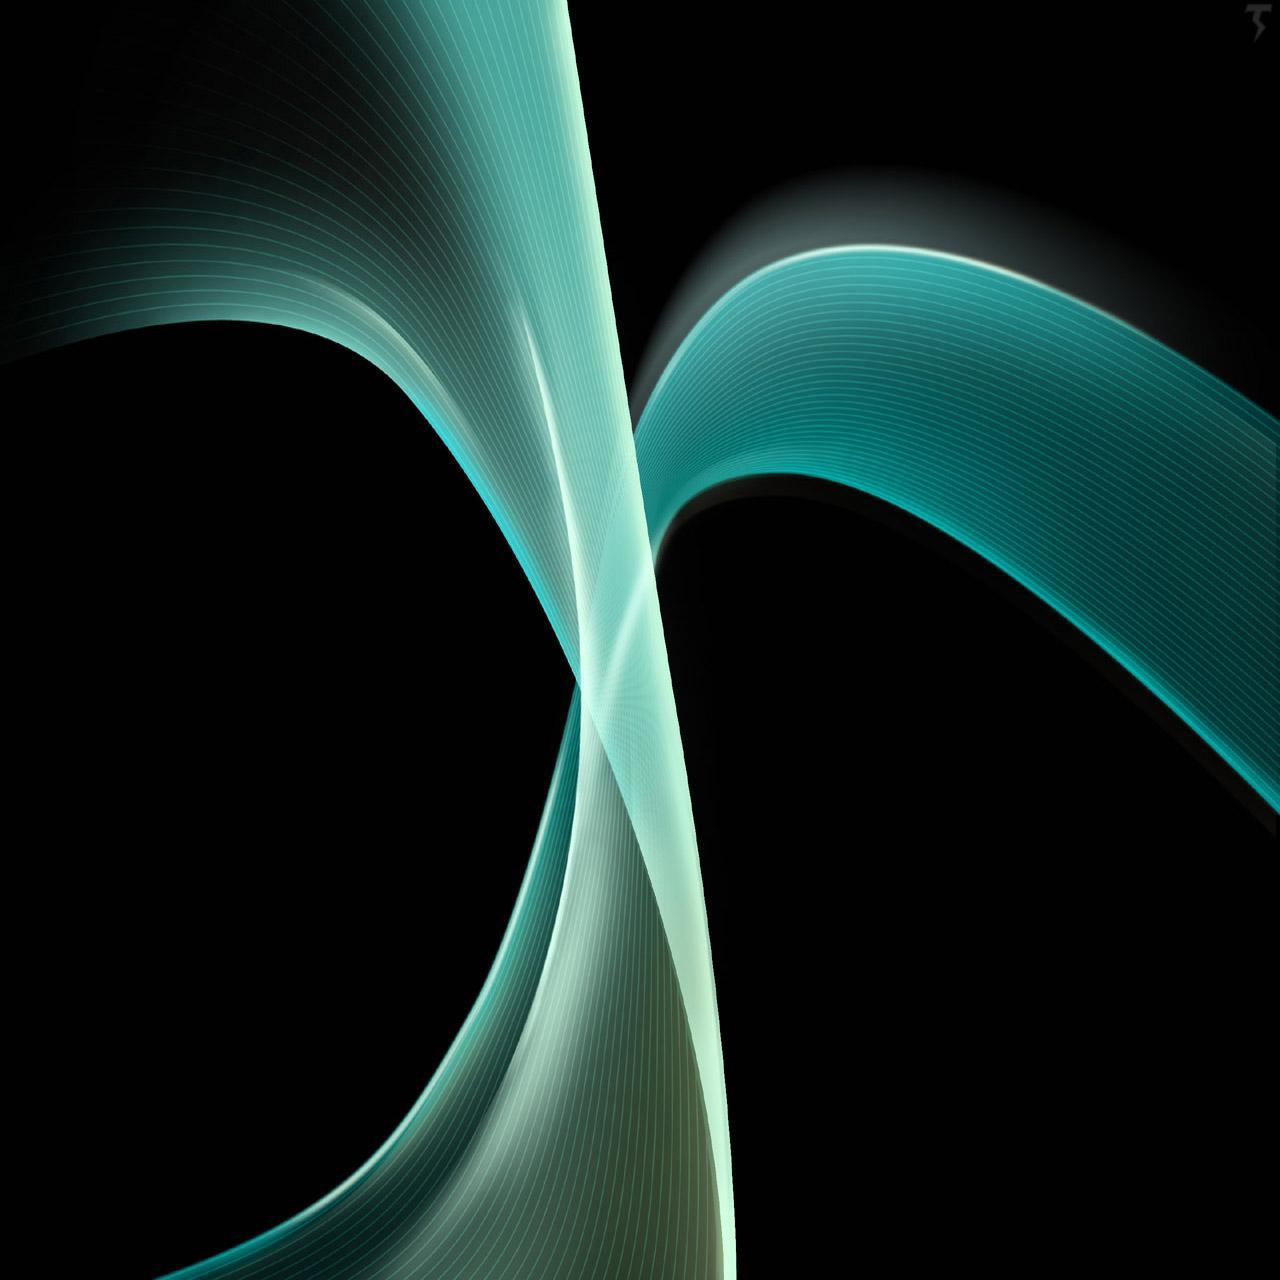 Hd Redmi Note 5a Wallpaper For Android Apk Download